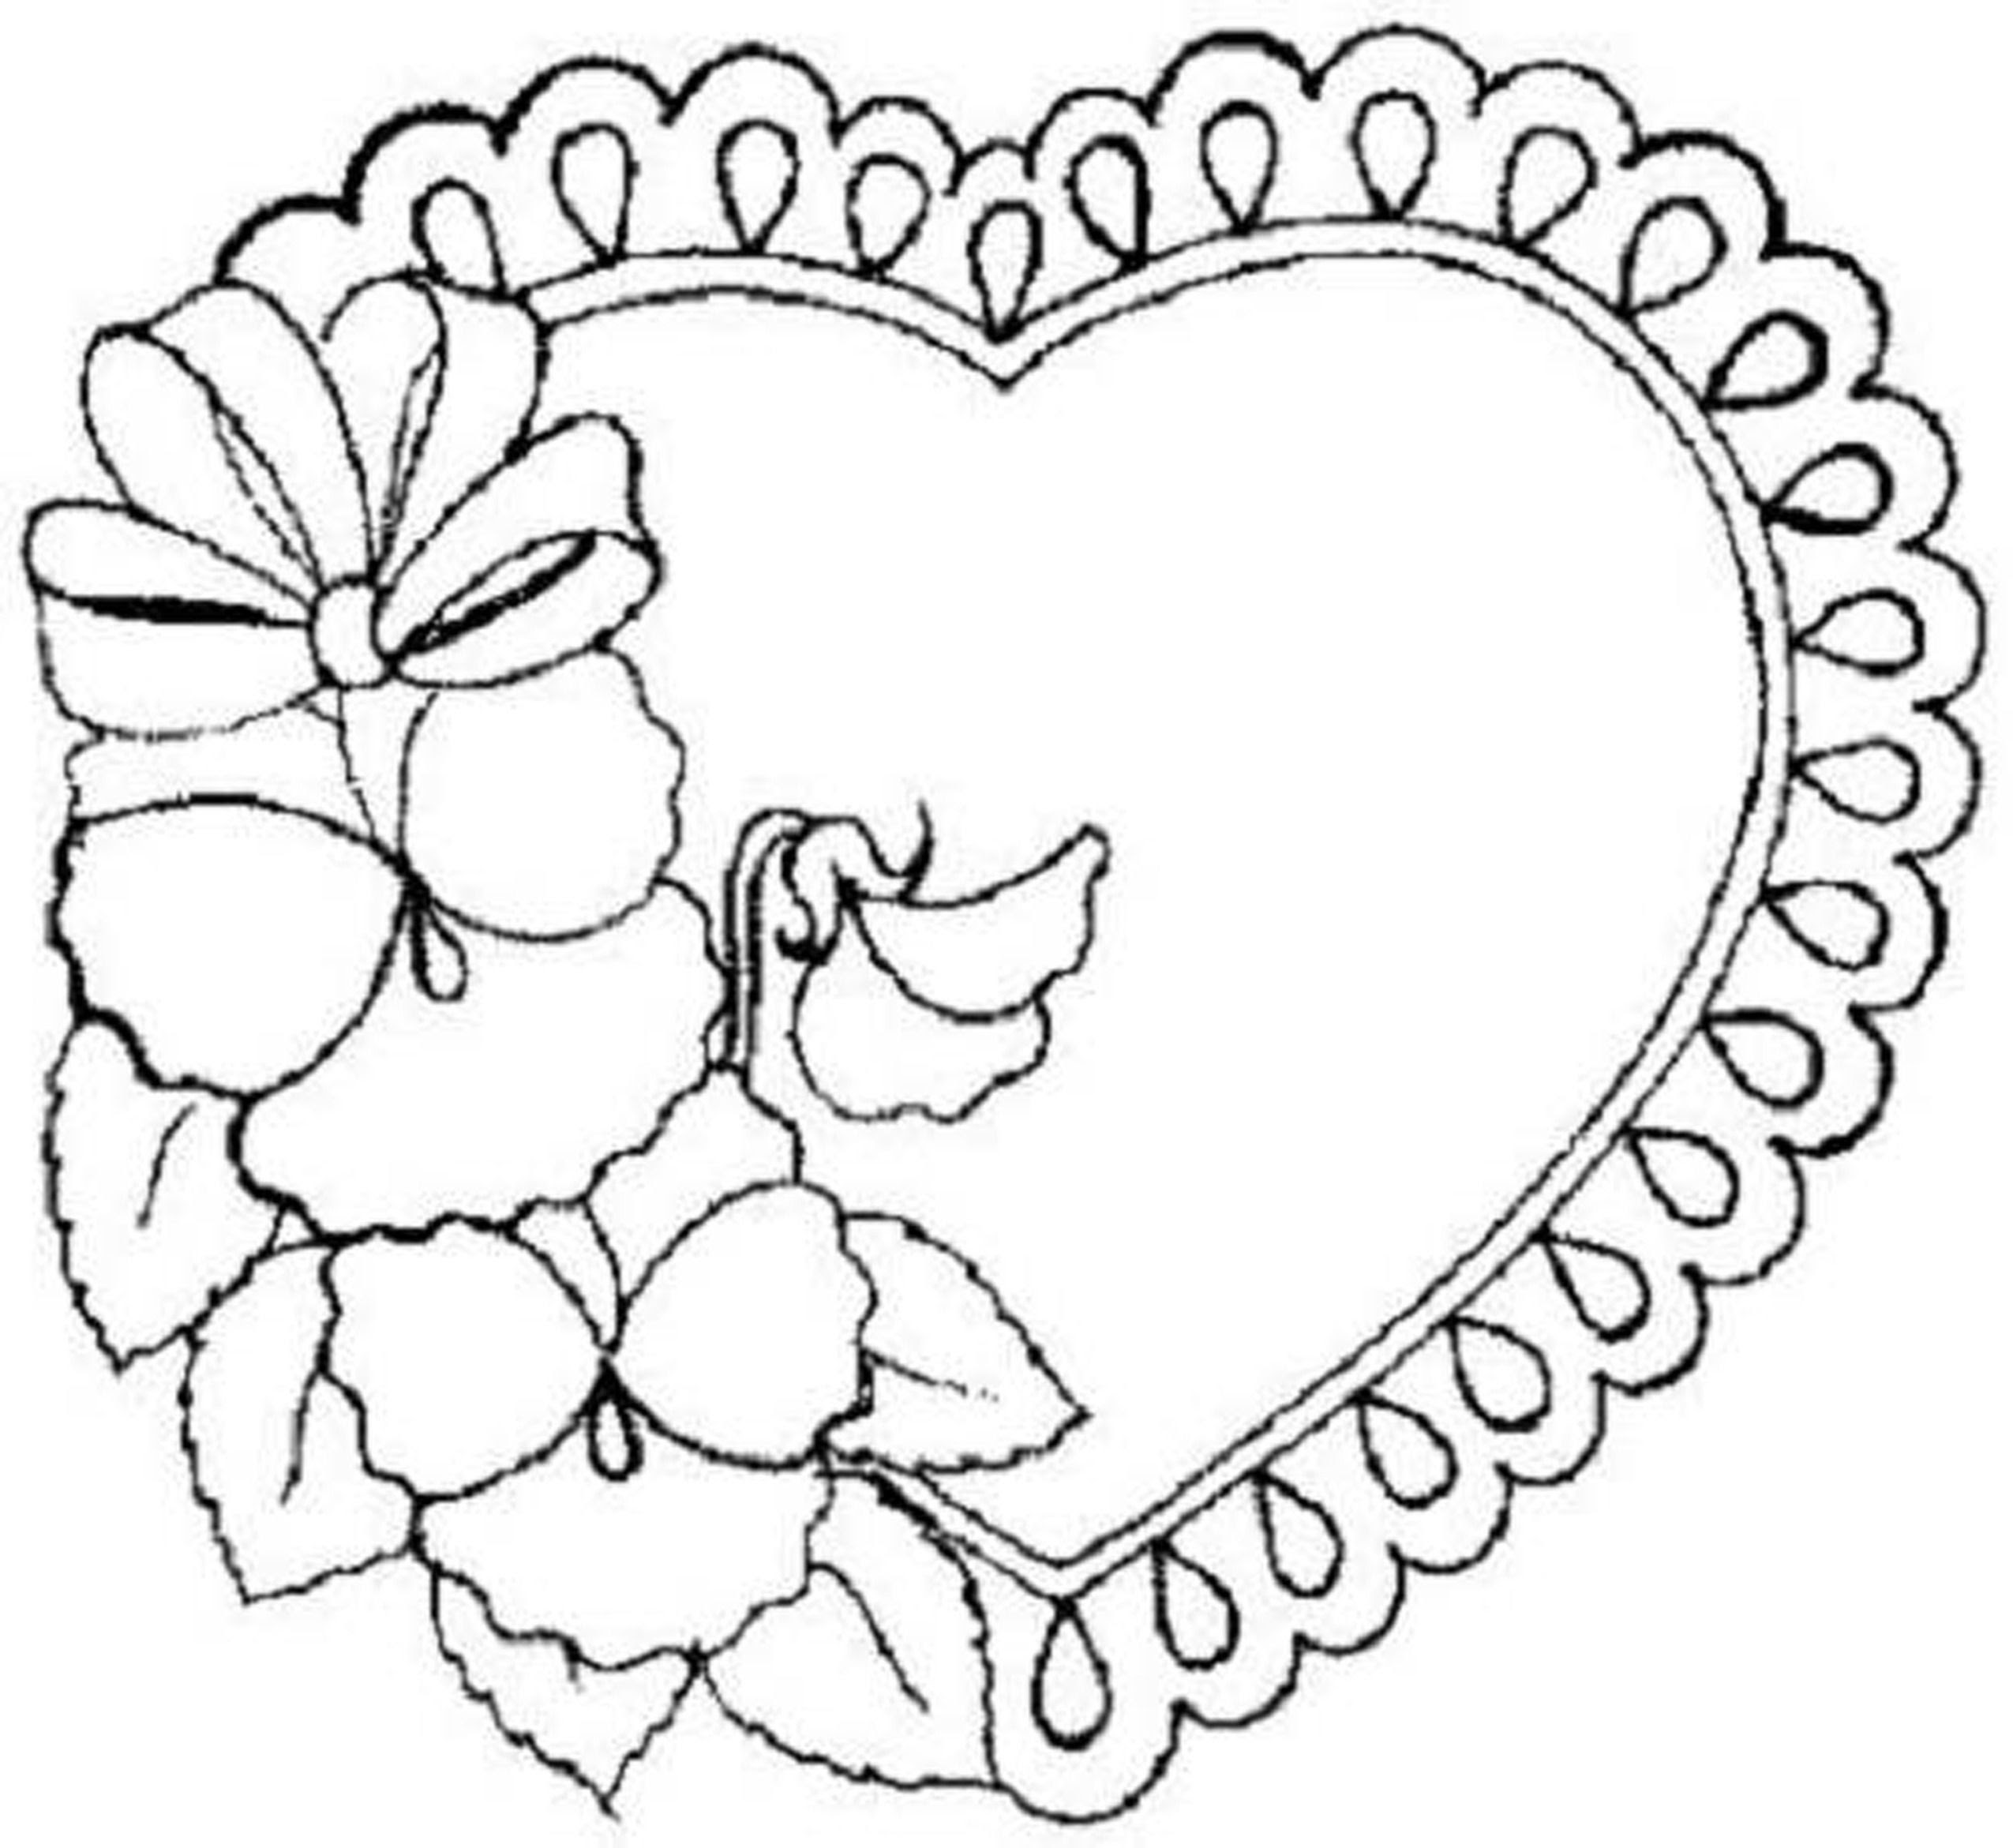 Free Girls Flowers Coloring Pages Download Free Clip Art Free Clip Art On Clipart Library